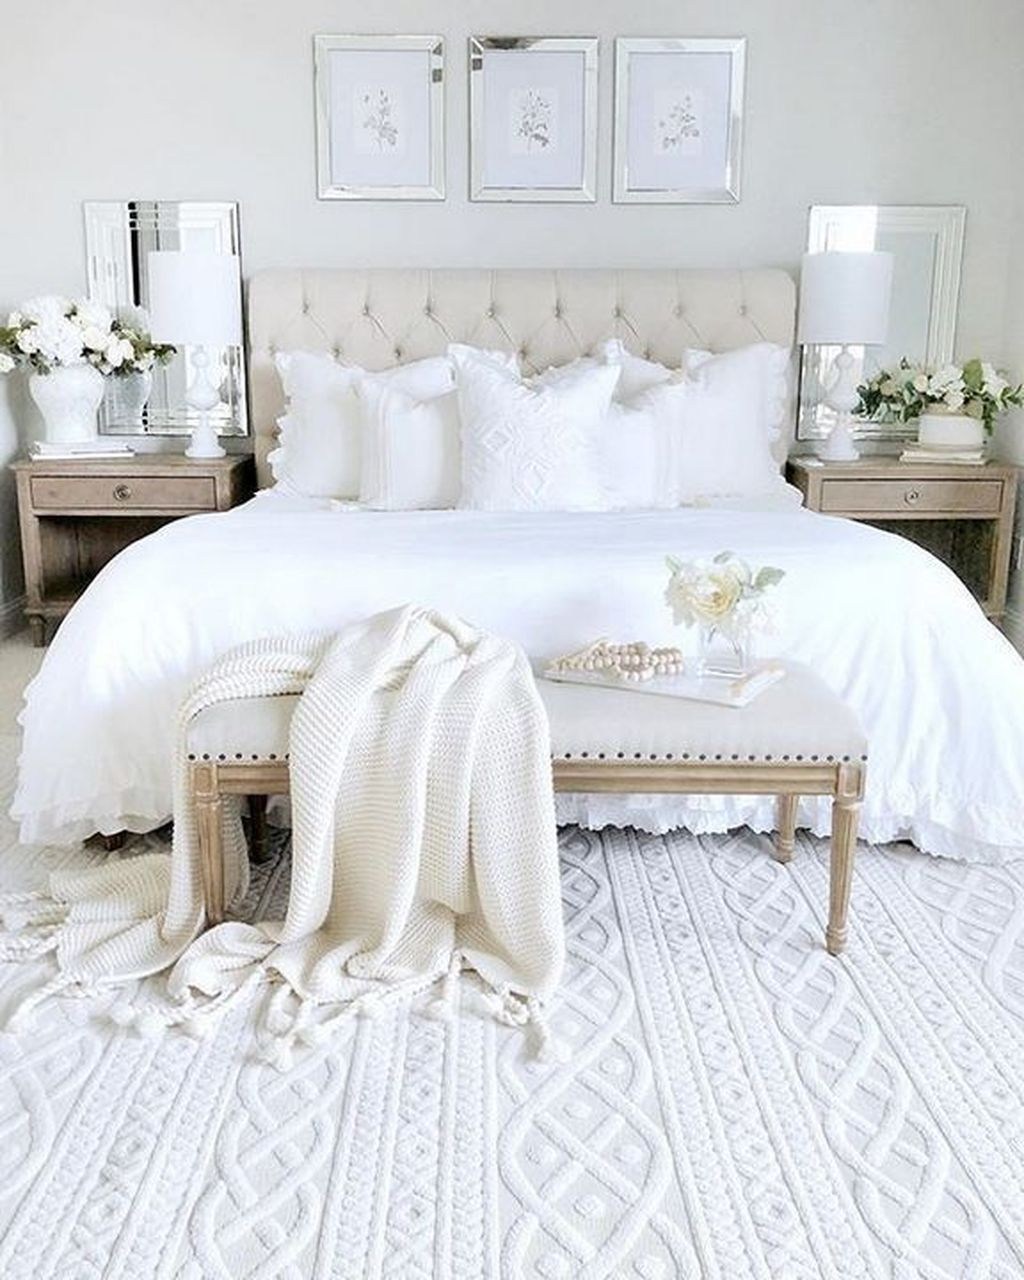 32 Perfect White Bedroom Ideas To Get Elegant Accent Belihouse Com White Master Bedroom Master Bedrooms Decor Bedroom Interior Elegant white bedroom ideas